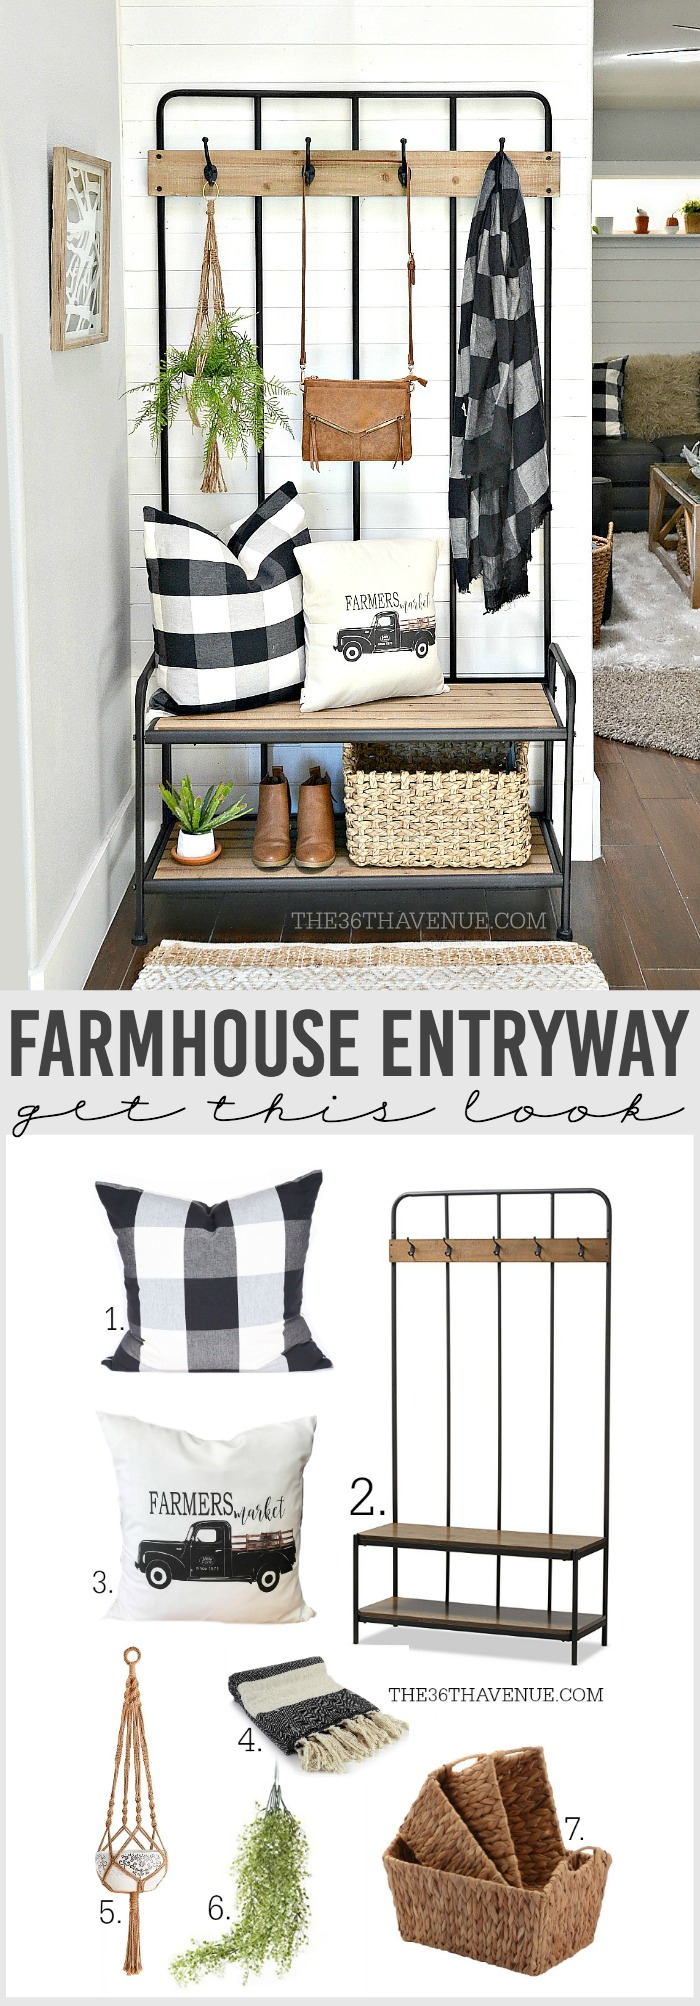 Beautiful and versatile Farmhouse Entryway Decor Ideas that are affordable and easy to put together.